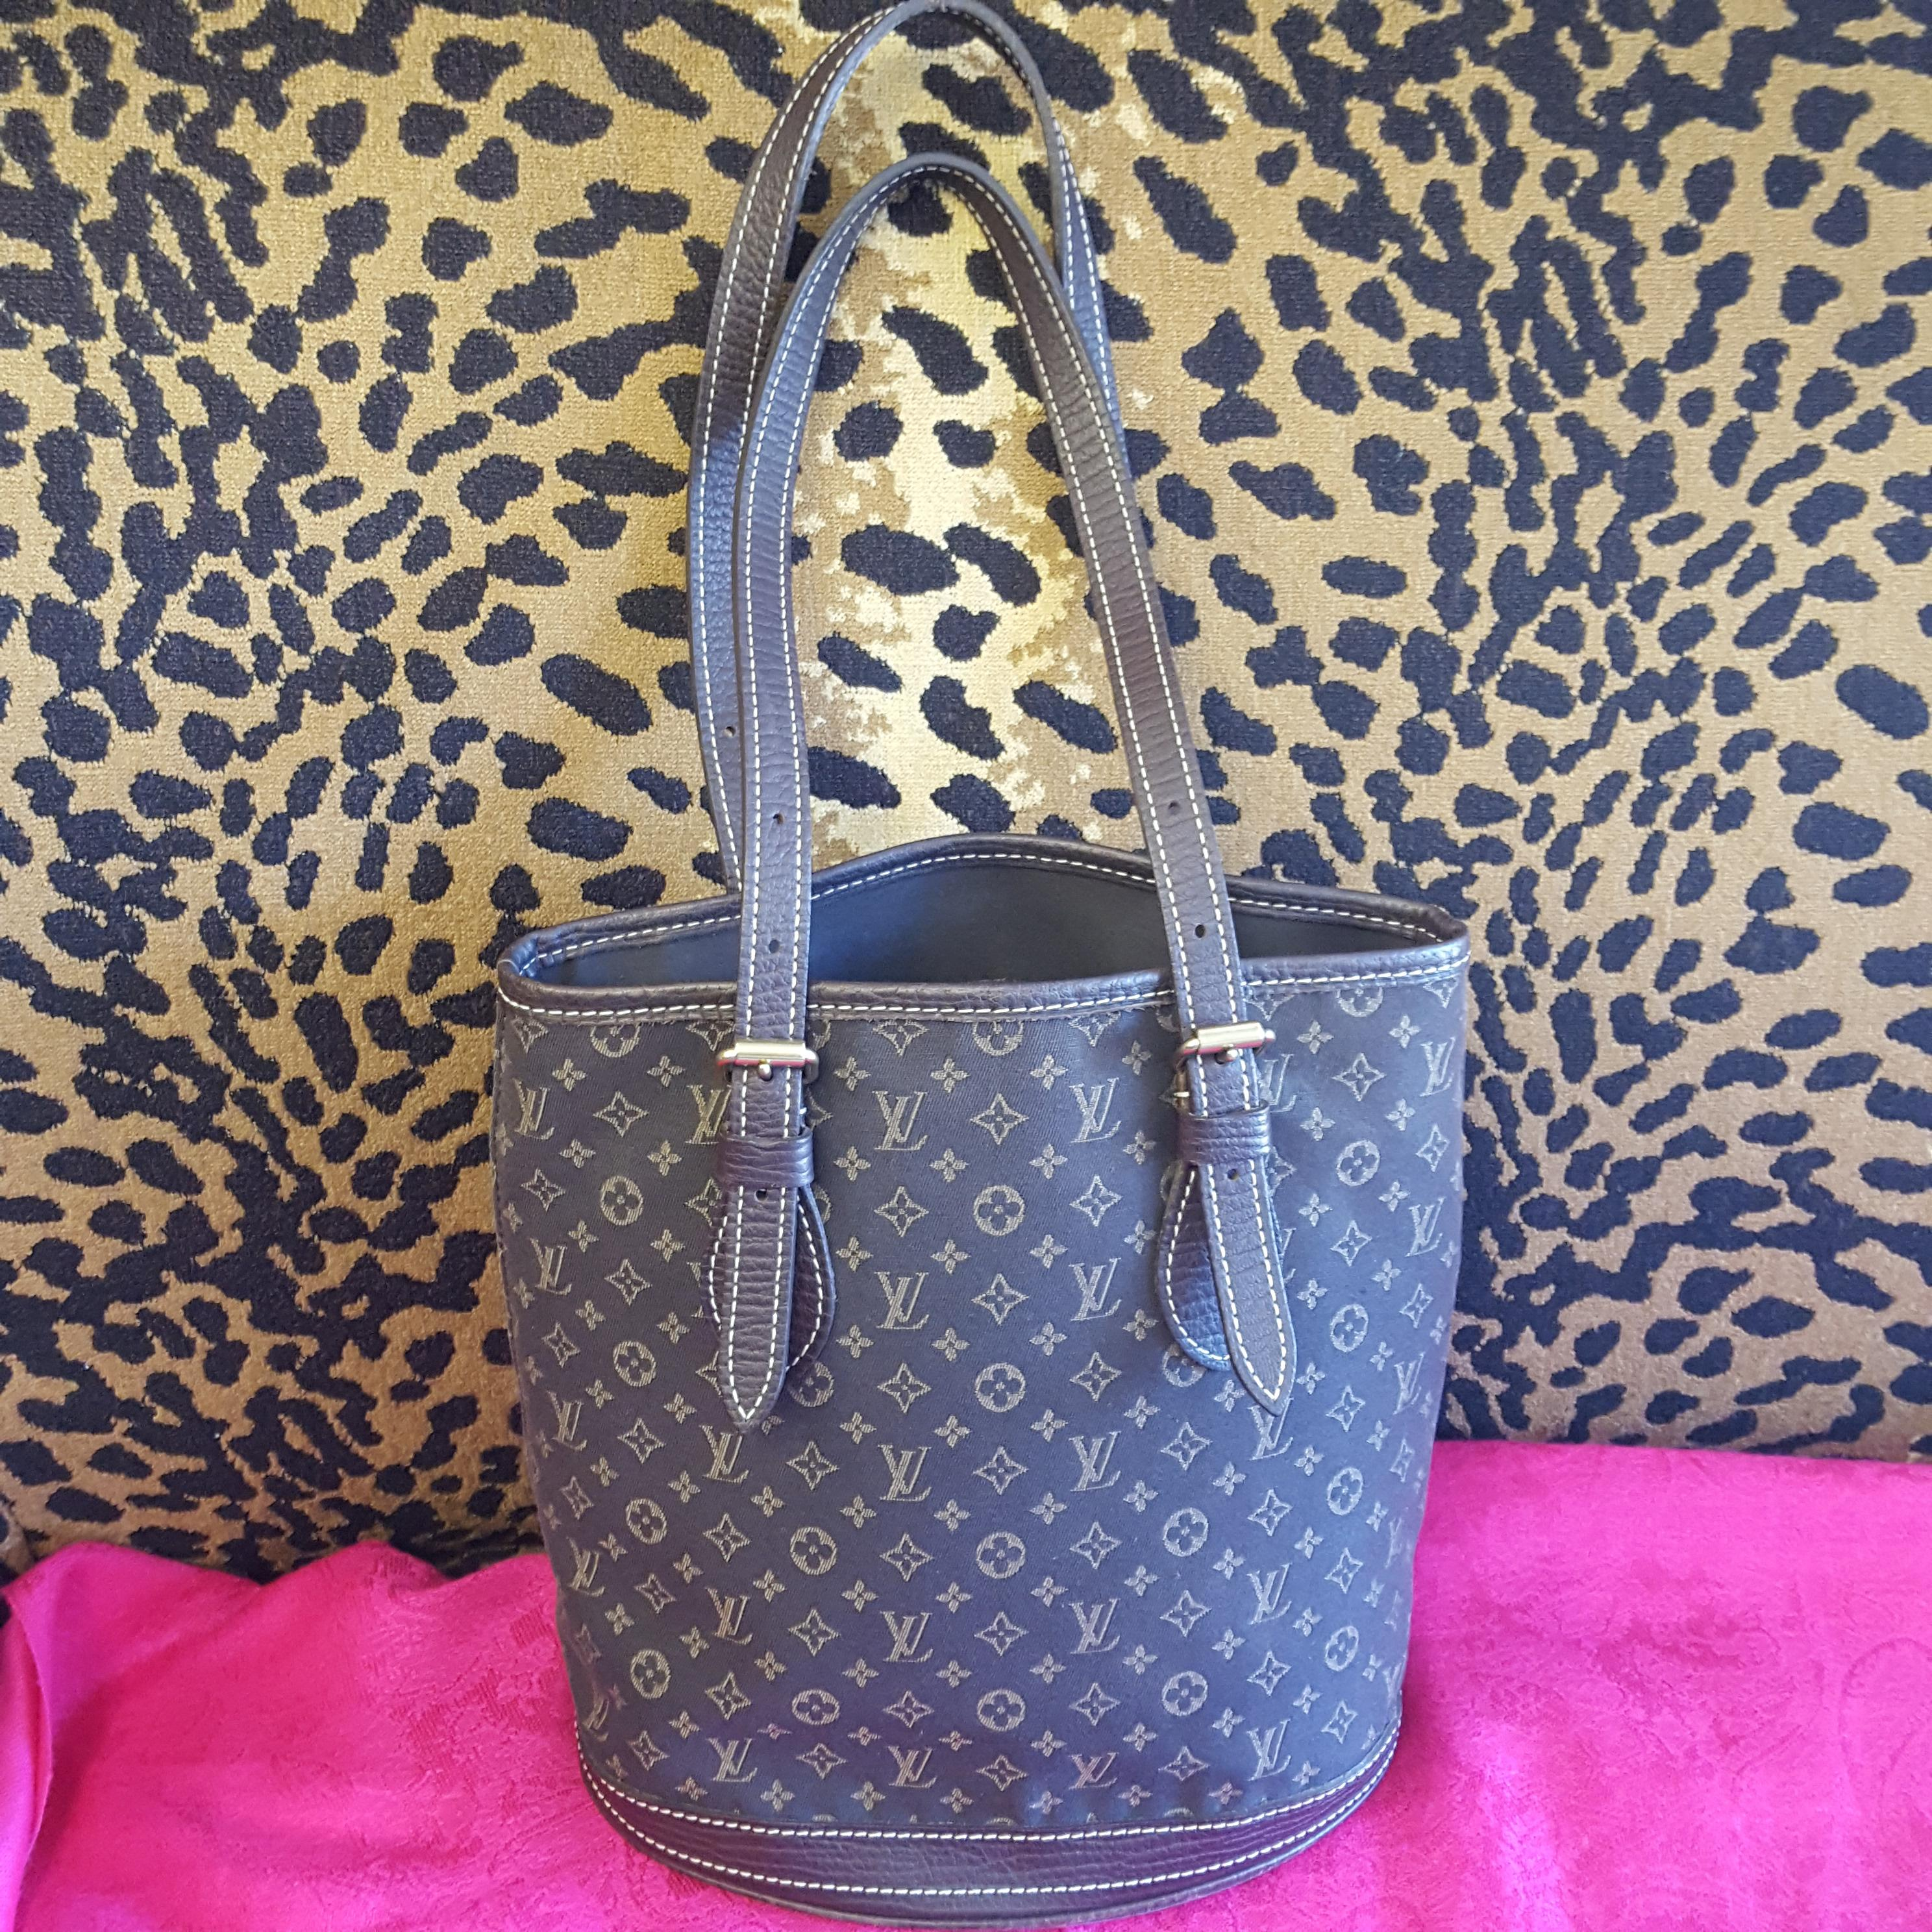 Louis Vuitton~ Buckets/ Pouchette, Purses, Handbags Price: $589.99